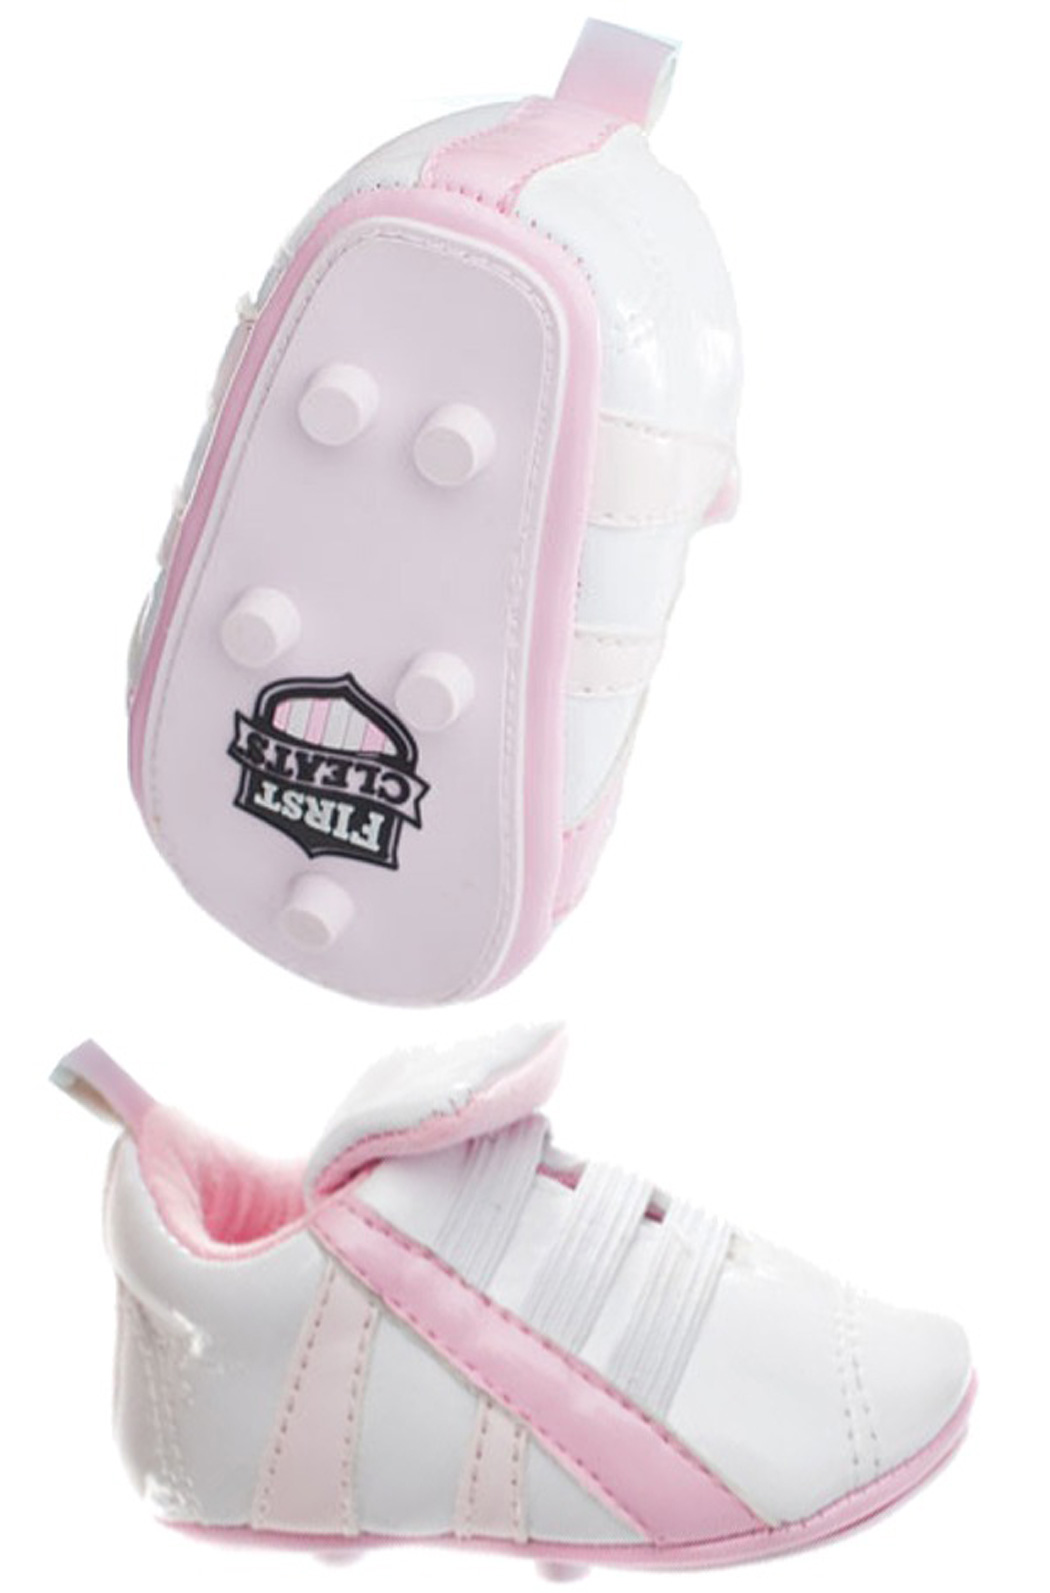 First Cleat newborn baby soccer shoes in pink by Code Four Athletics